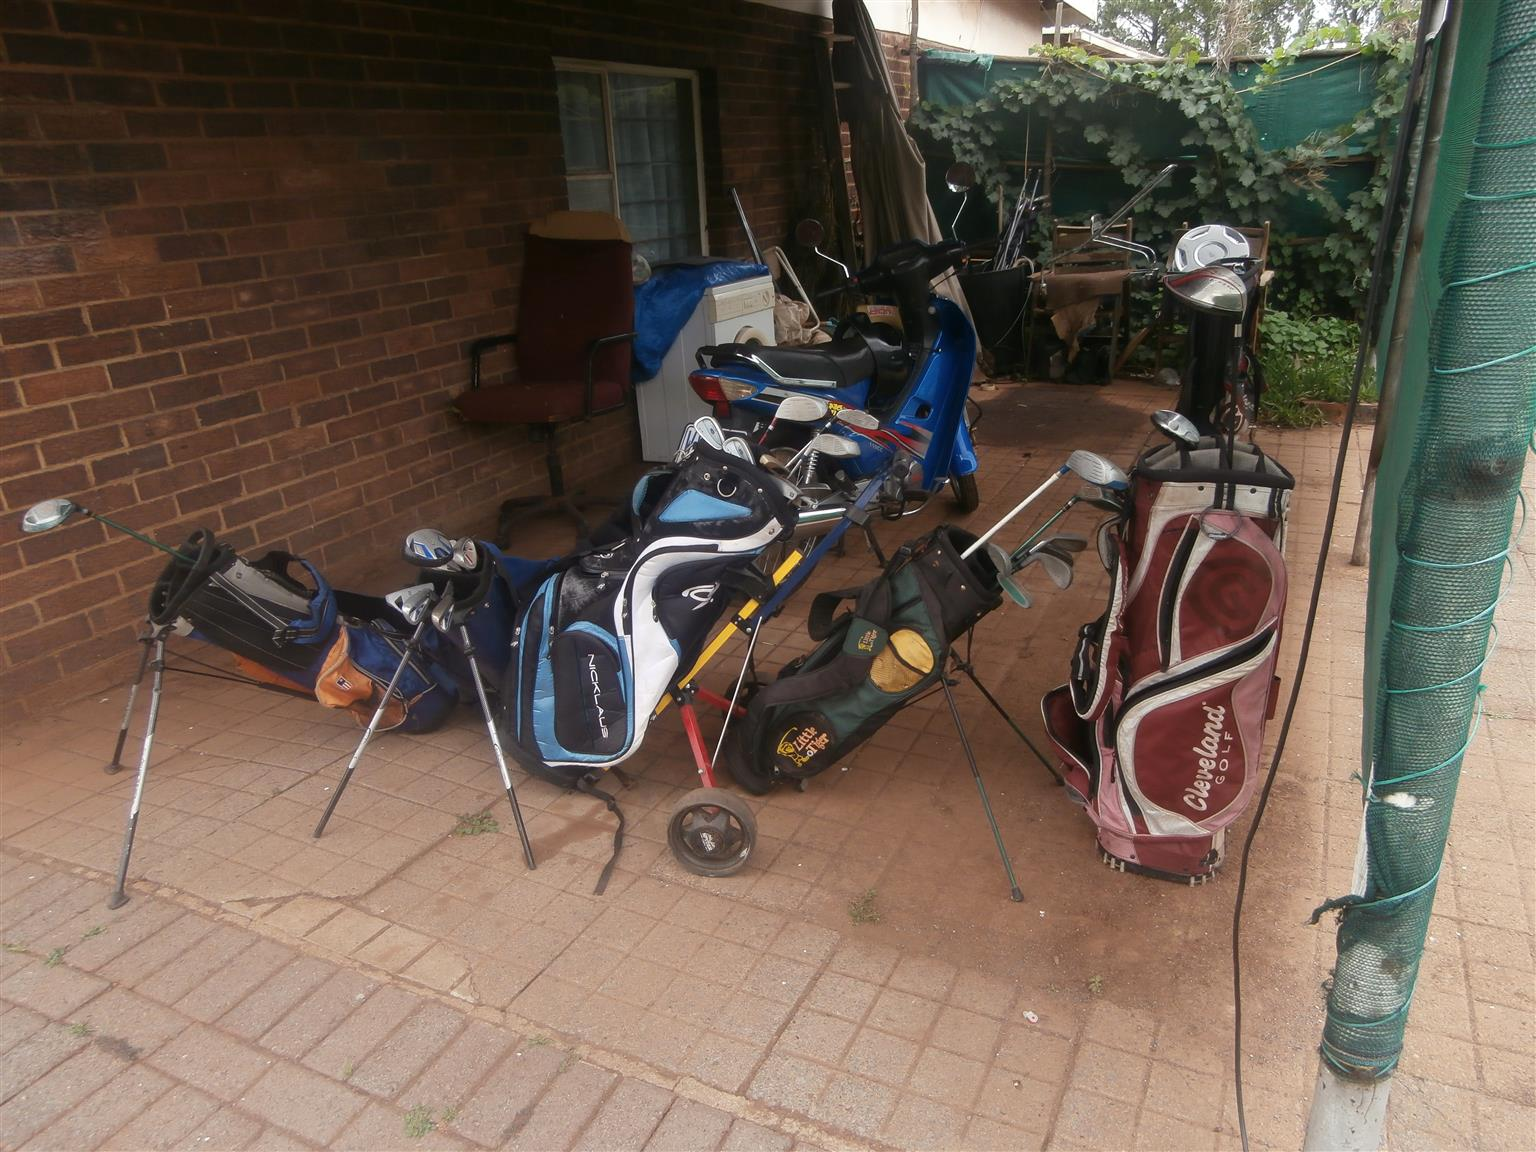 Golf kits,six bags  and sticks plus defy tumble drayer for cheap